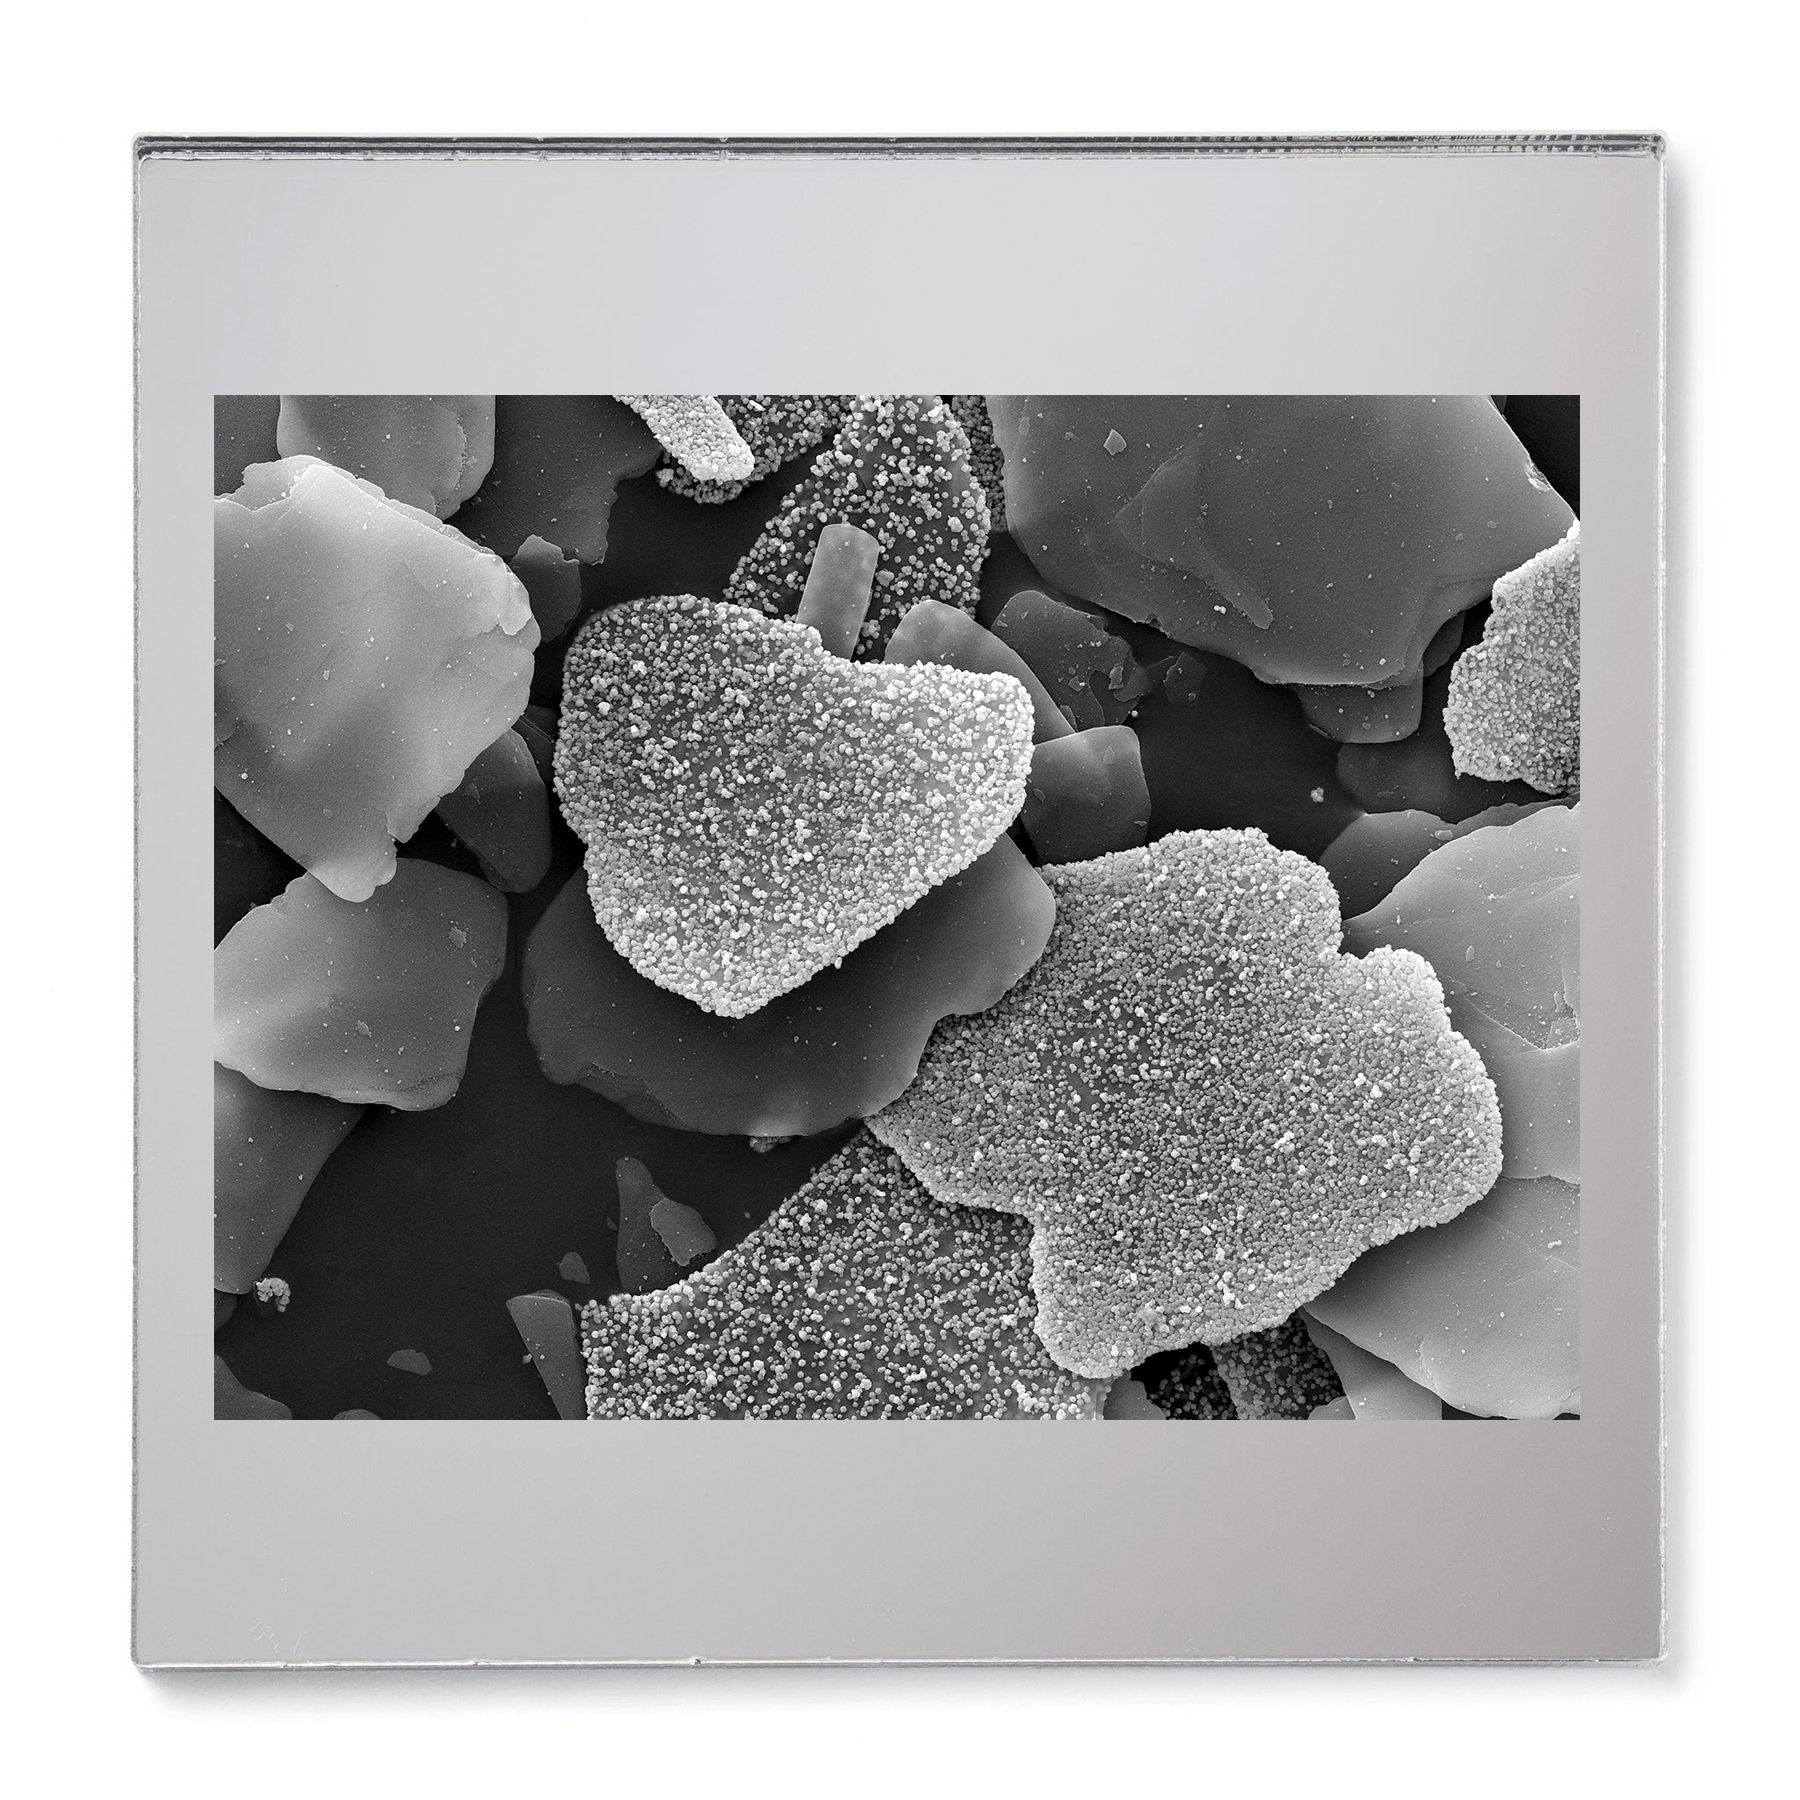 Mica Silver Pigment #3. Gelatin silver print mounted on acrylic. 2015